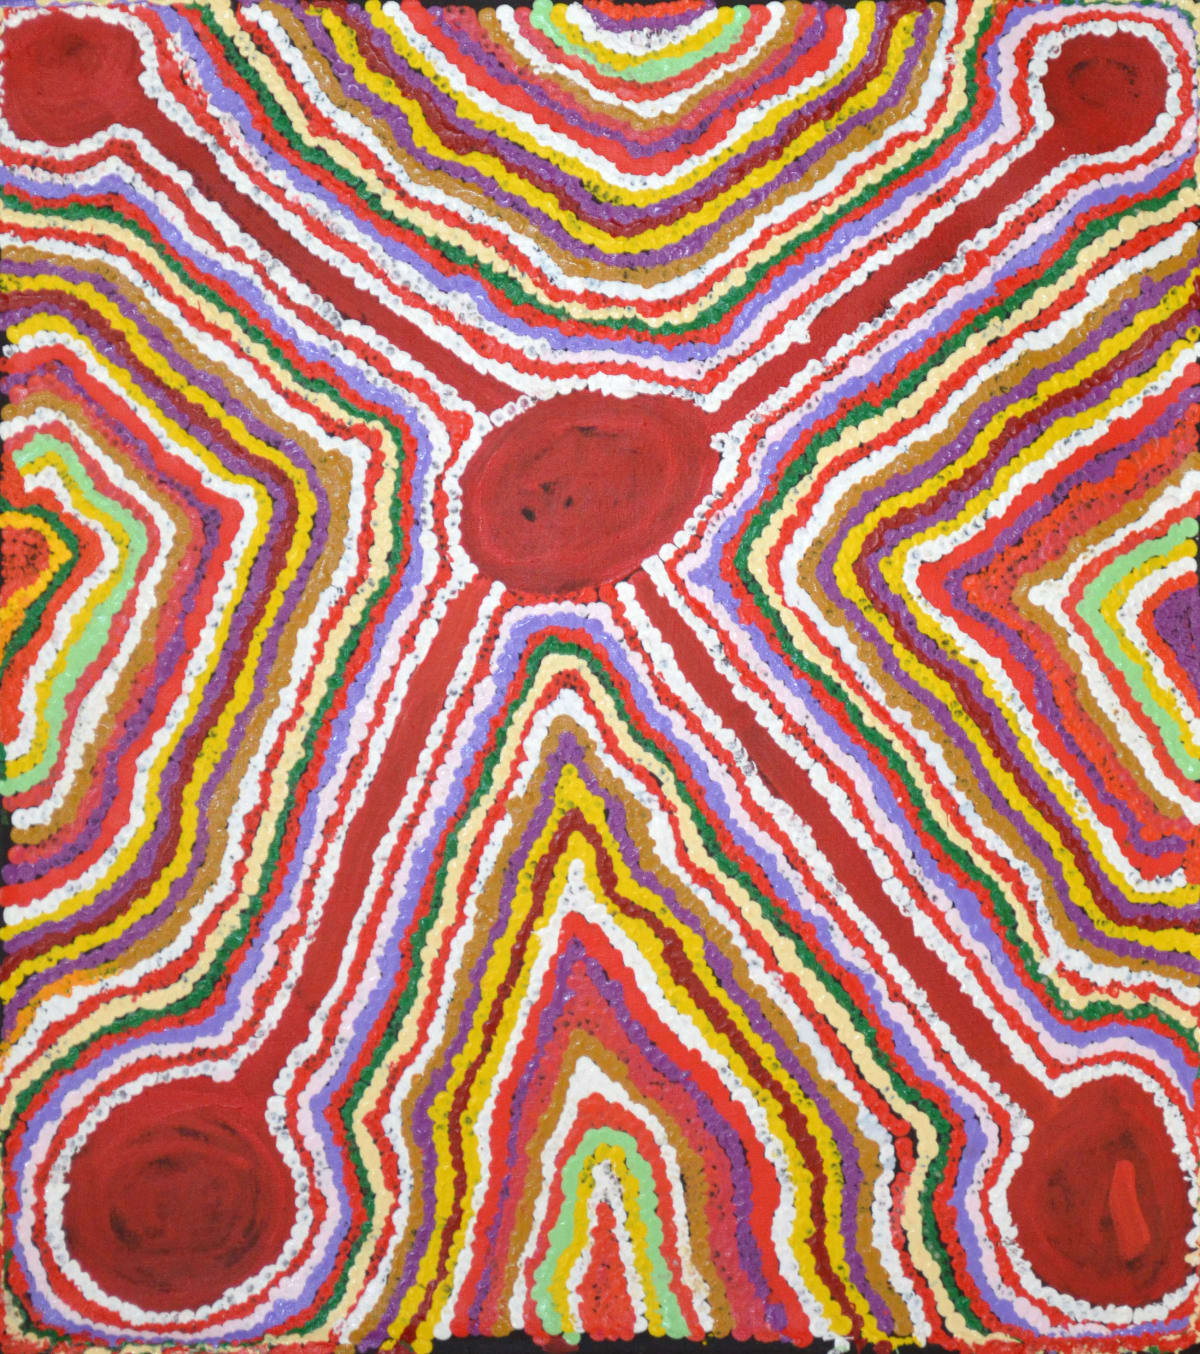 Jimmy Donegan Pukara acrylic on canvas 61 x 55 cm